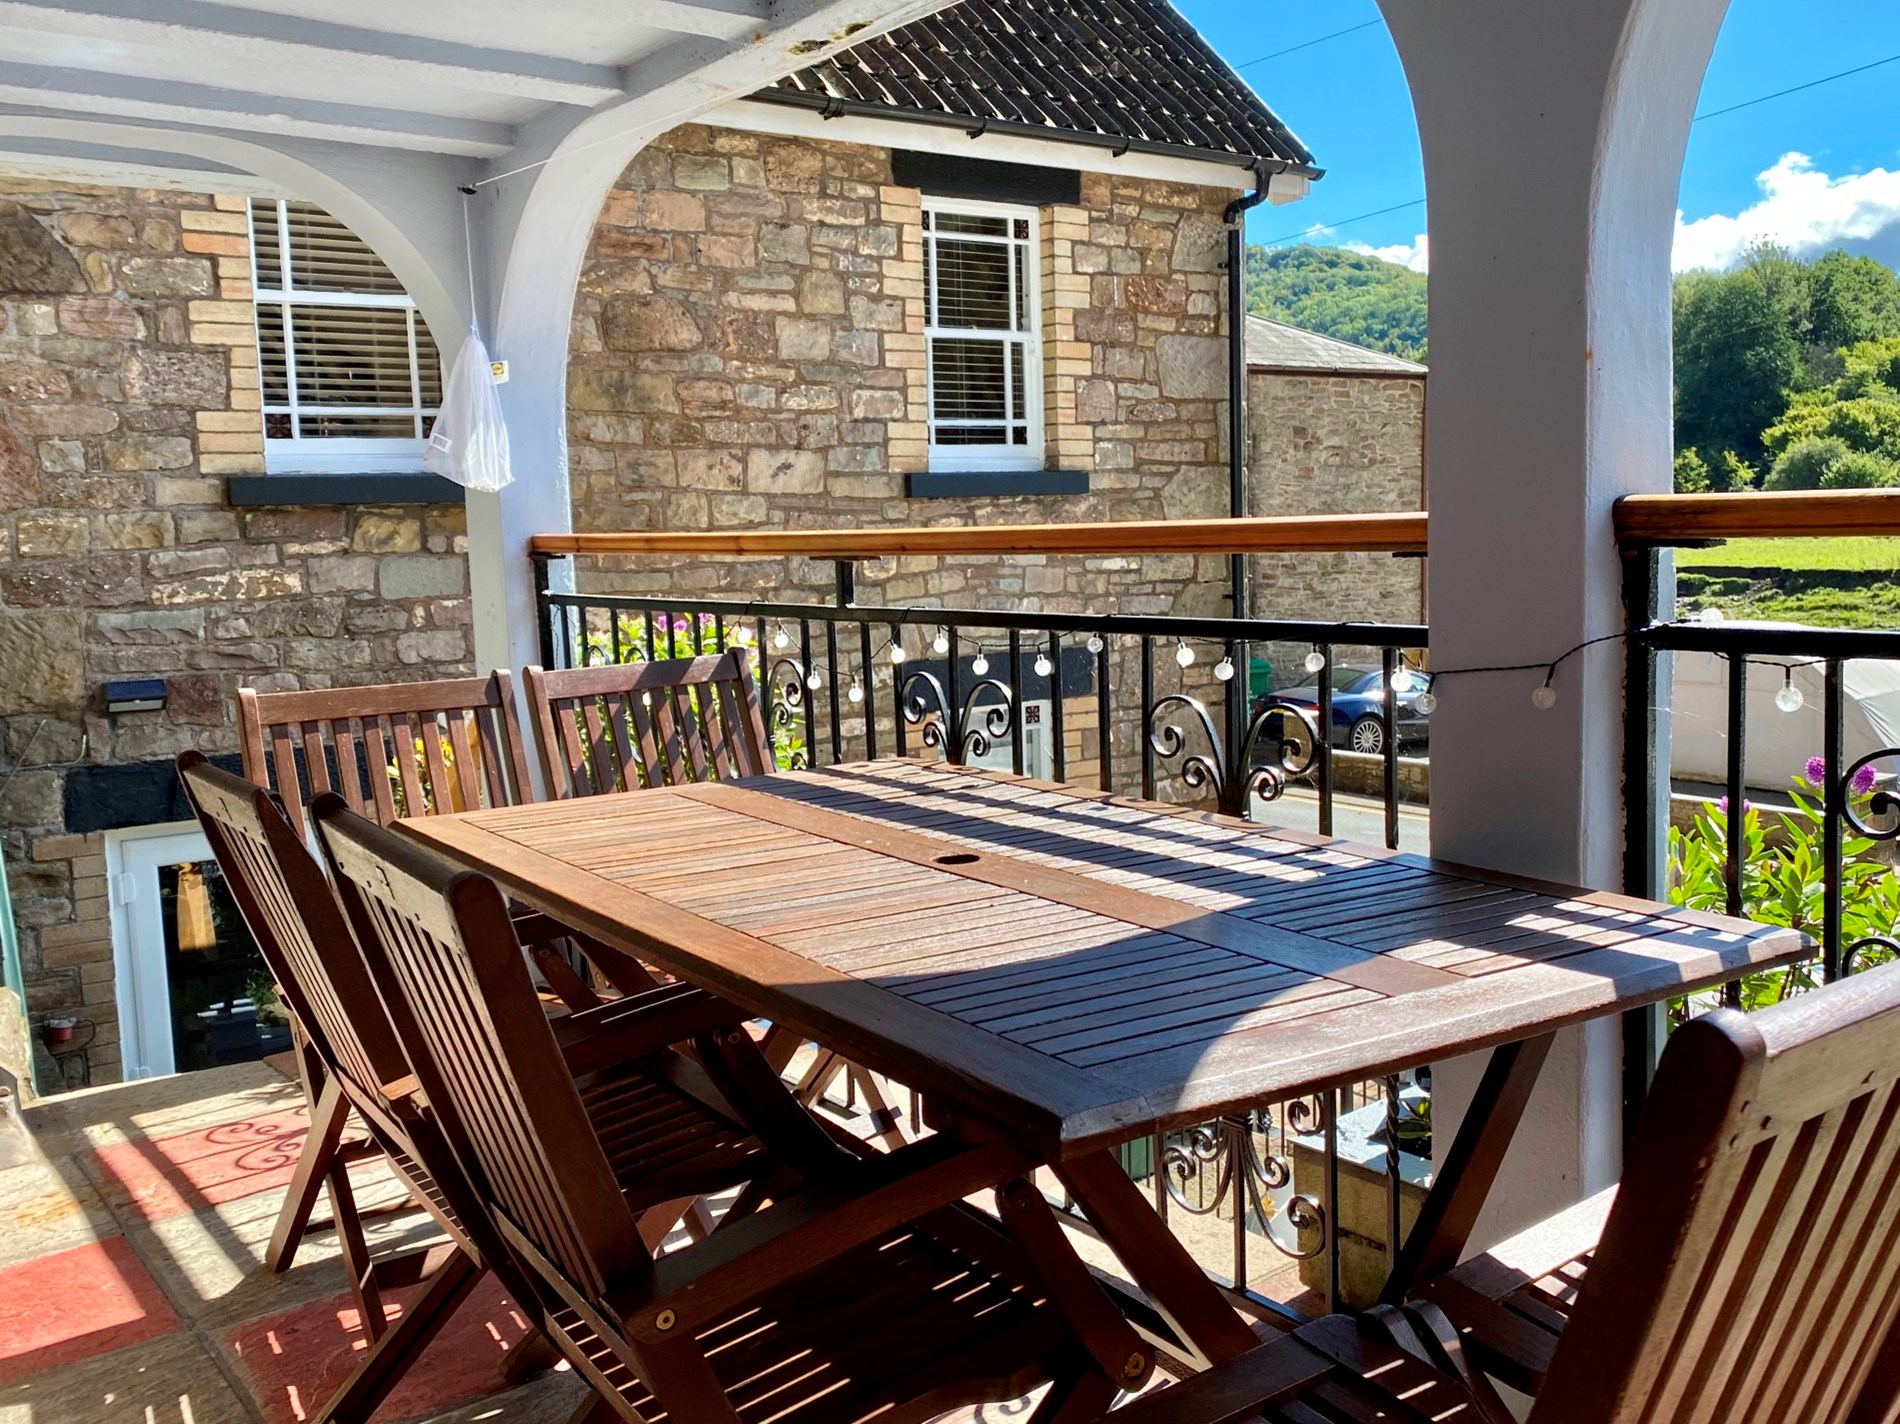 3 Bedroom House in South Wales, Pembrokeshire and the South